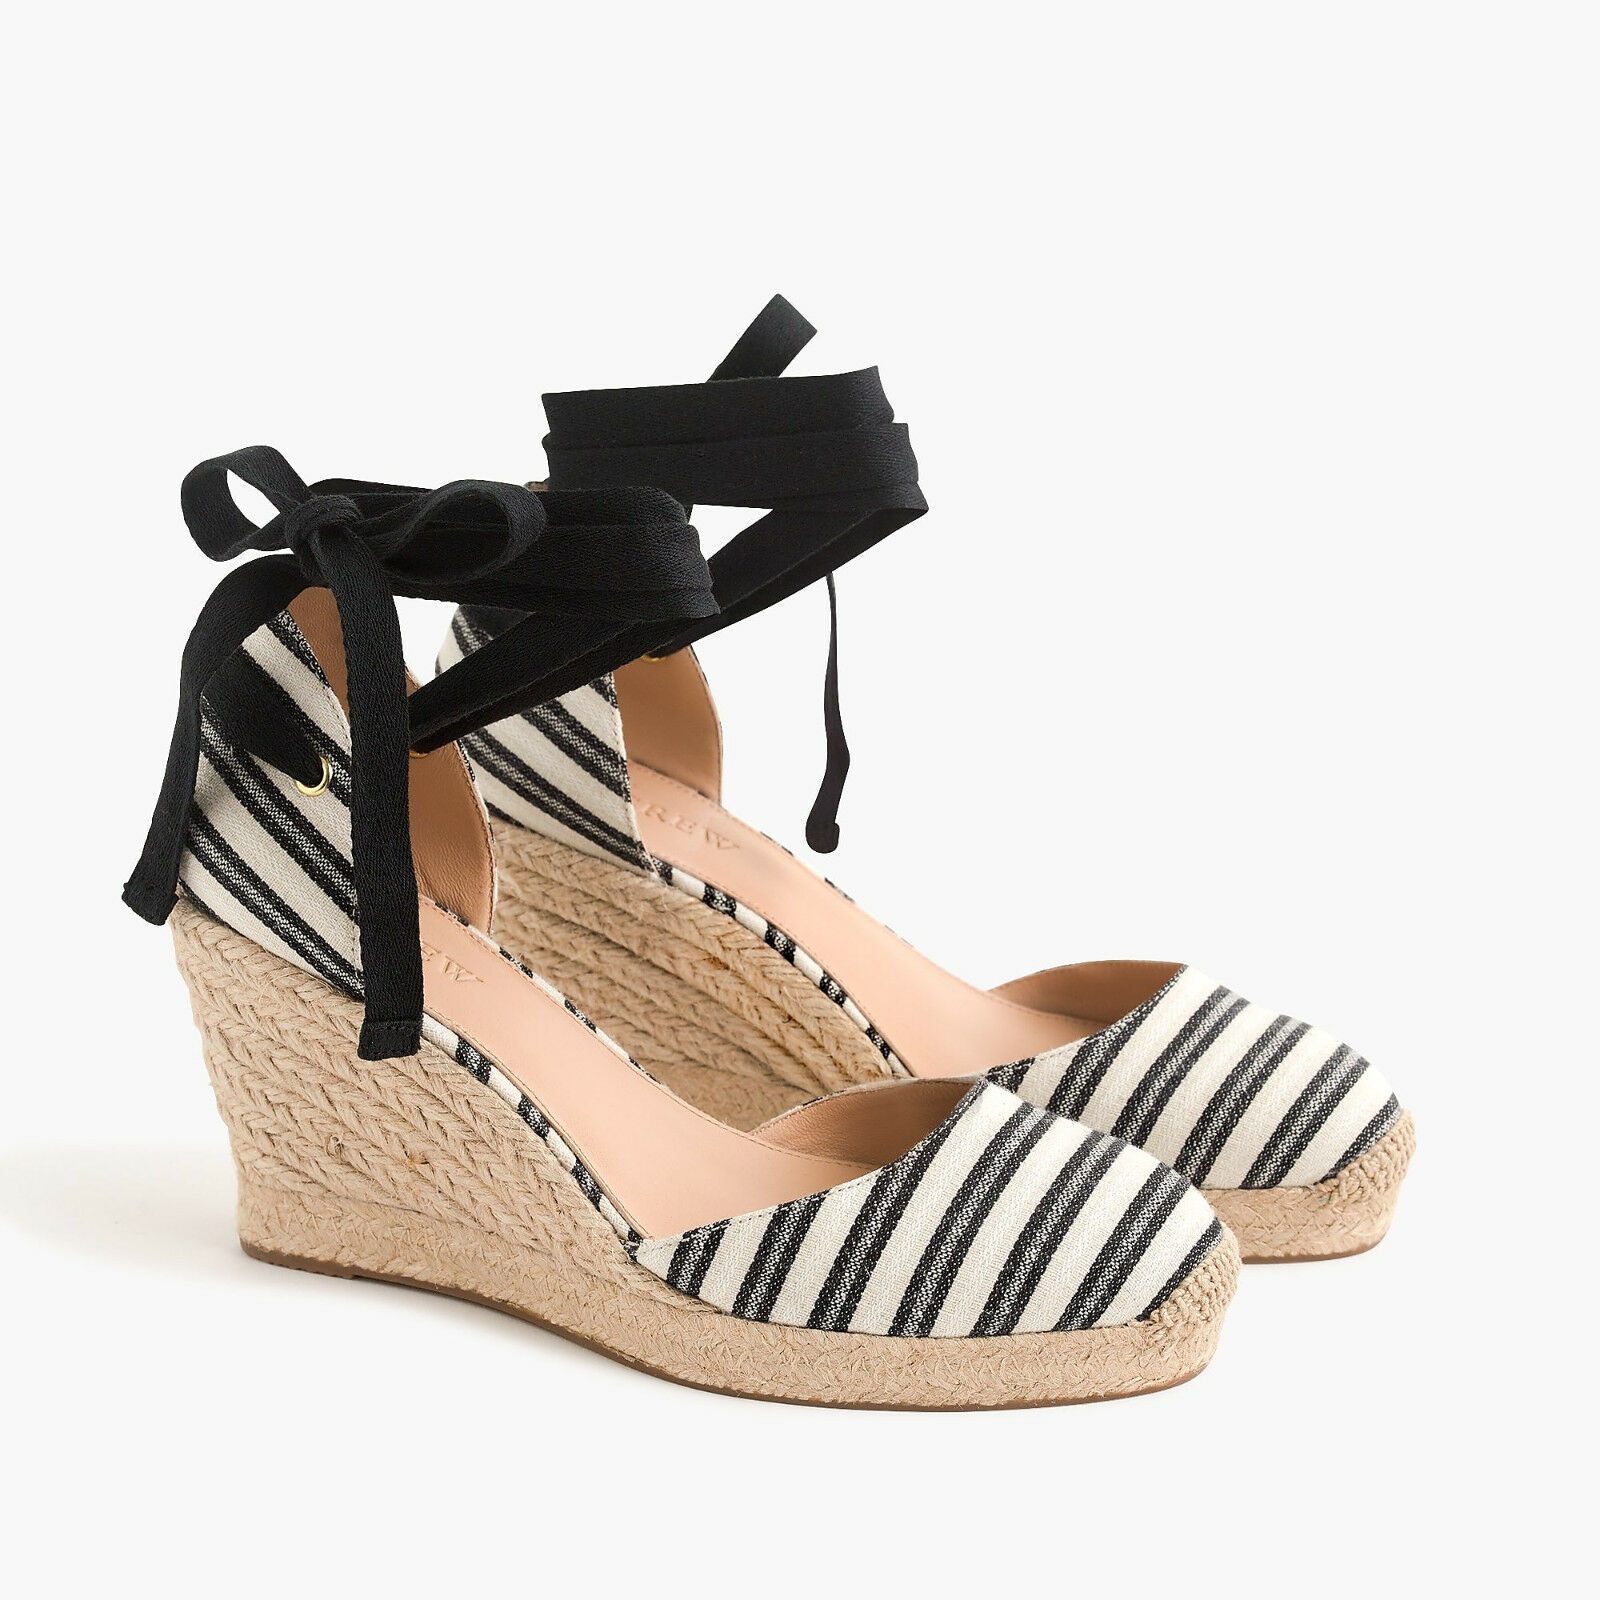 New in Box J Crew Women Espadrille Wedges With With Wedges Ankle Wrap in Stripe Size 7.5M c4af36